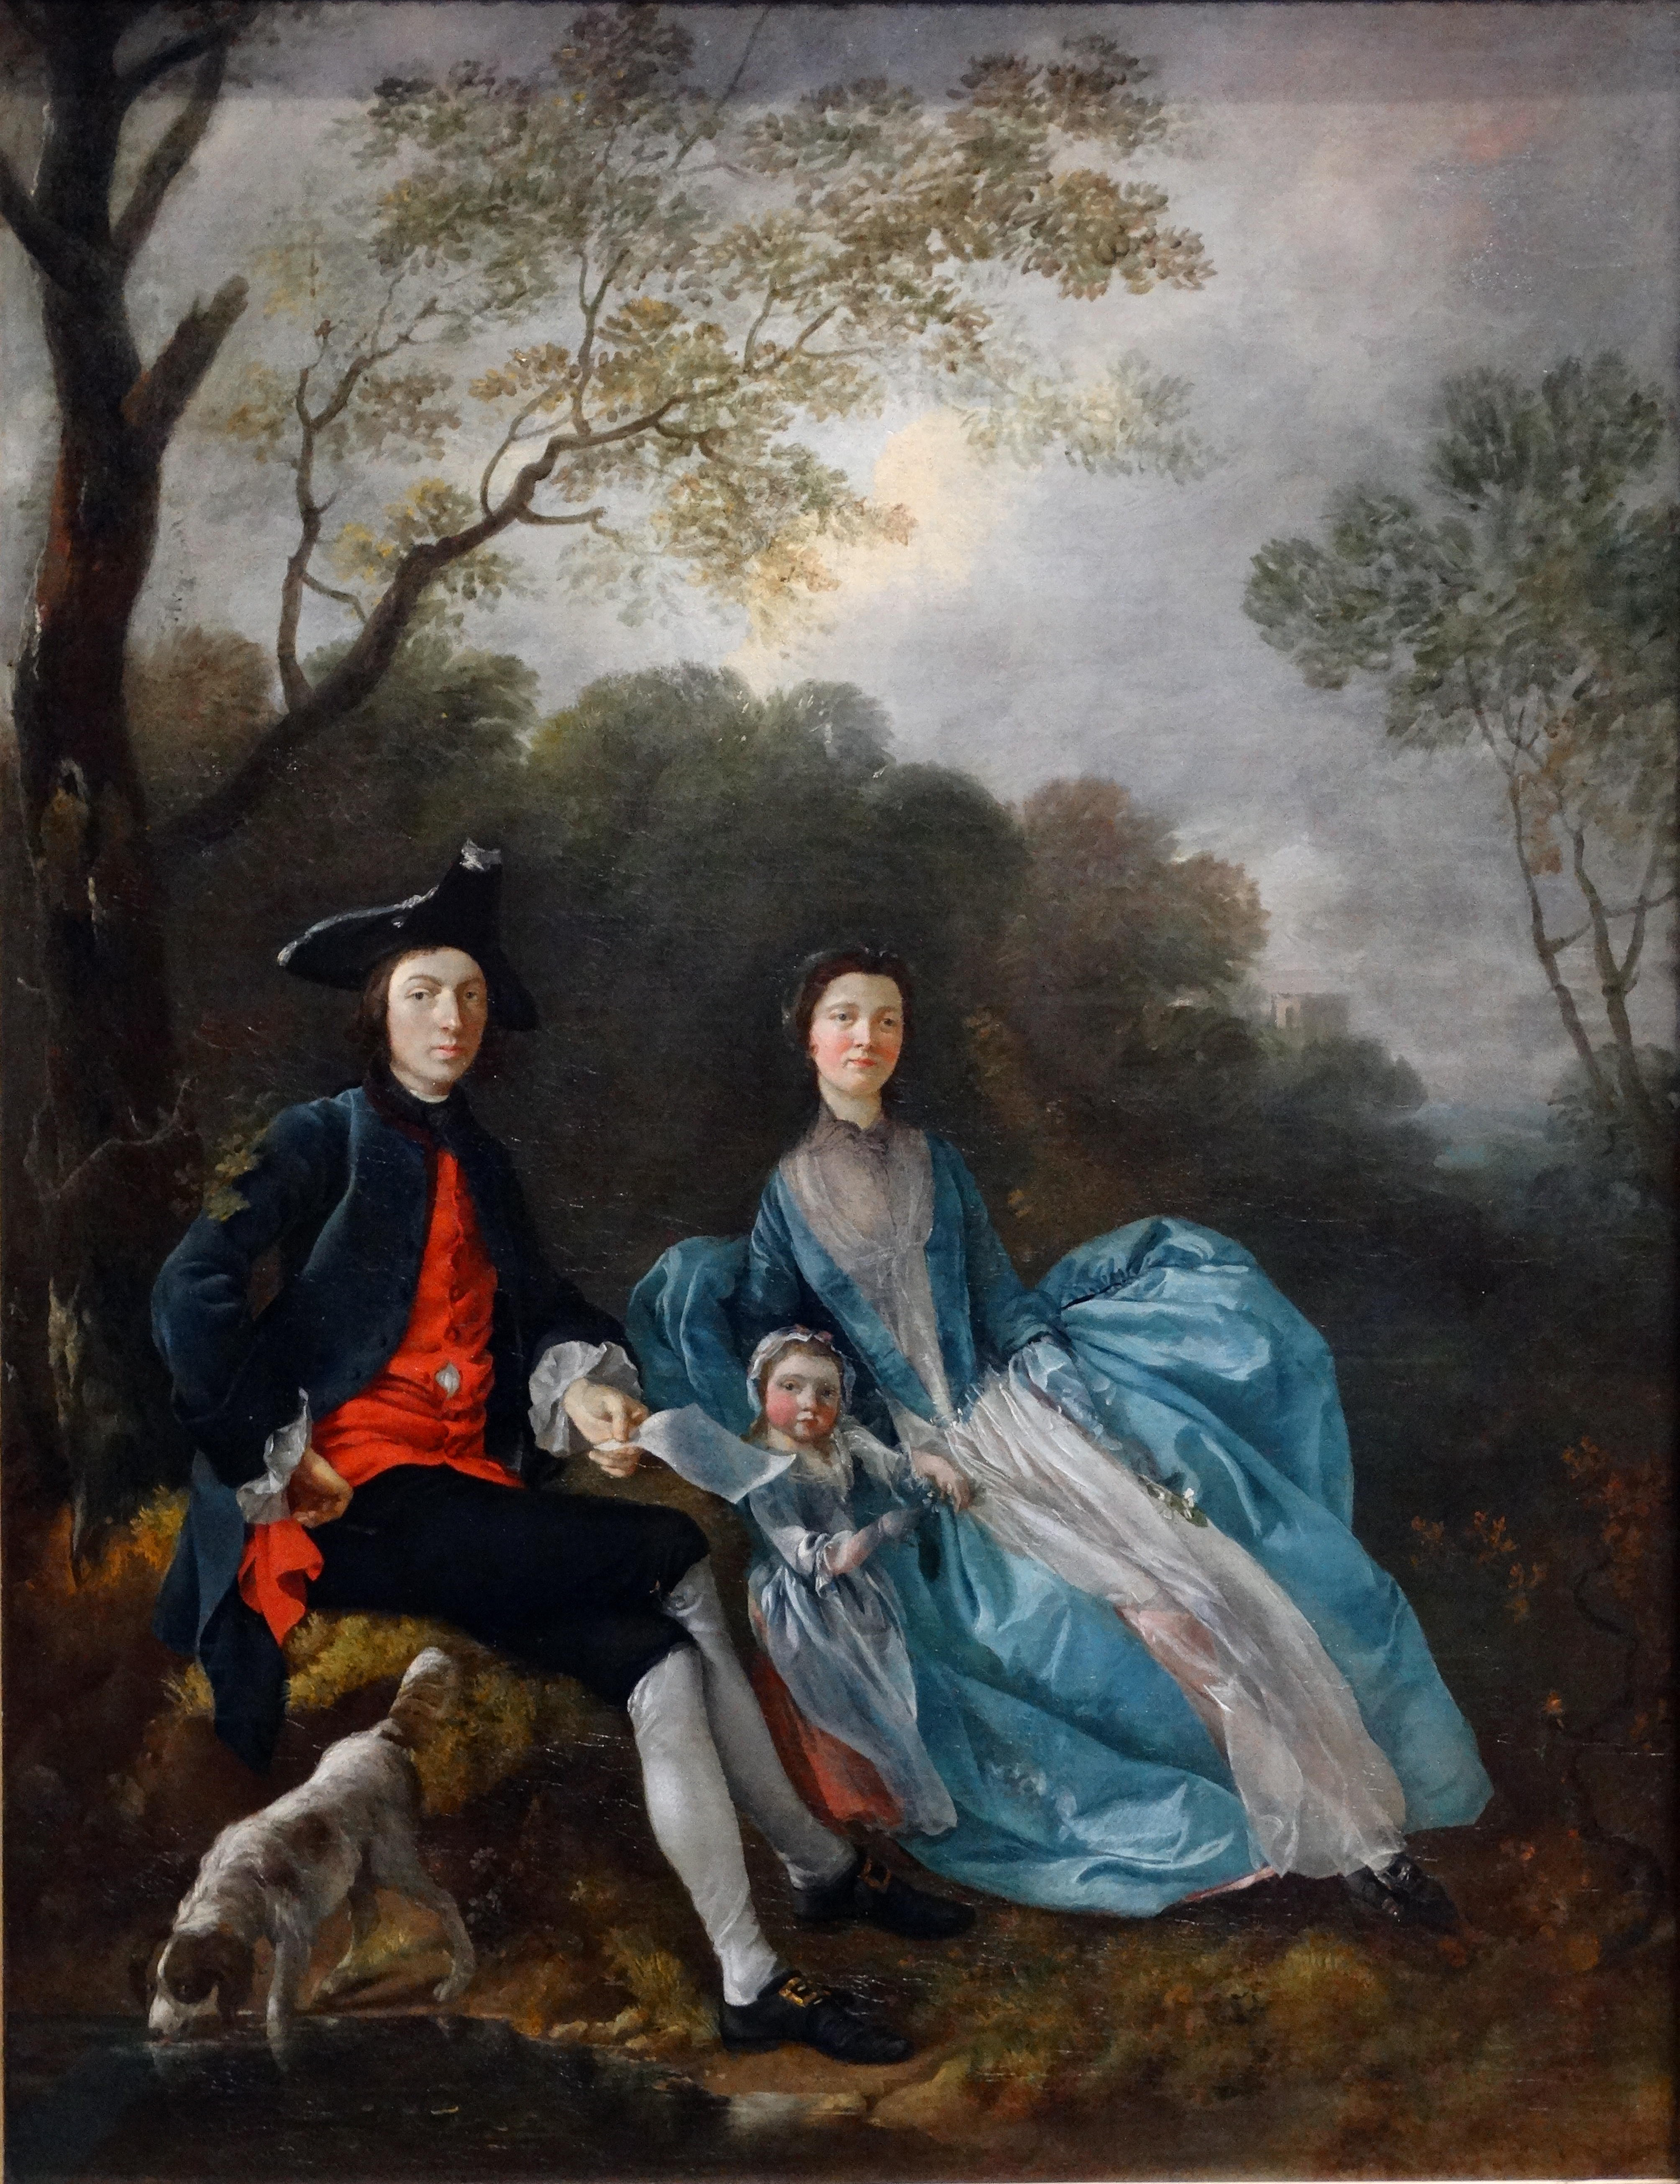 My Favourite Painting: The Marquess of Cholmondeley